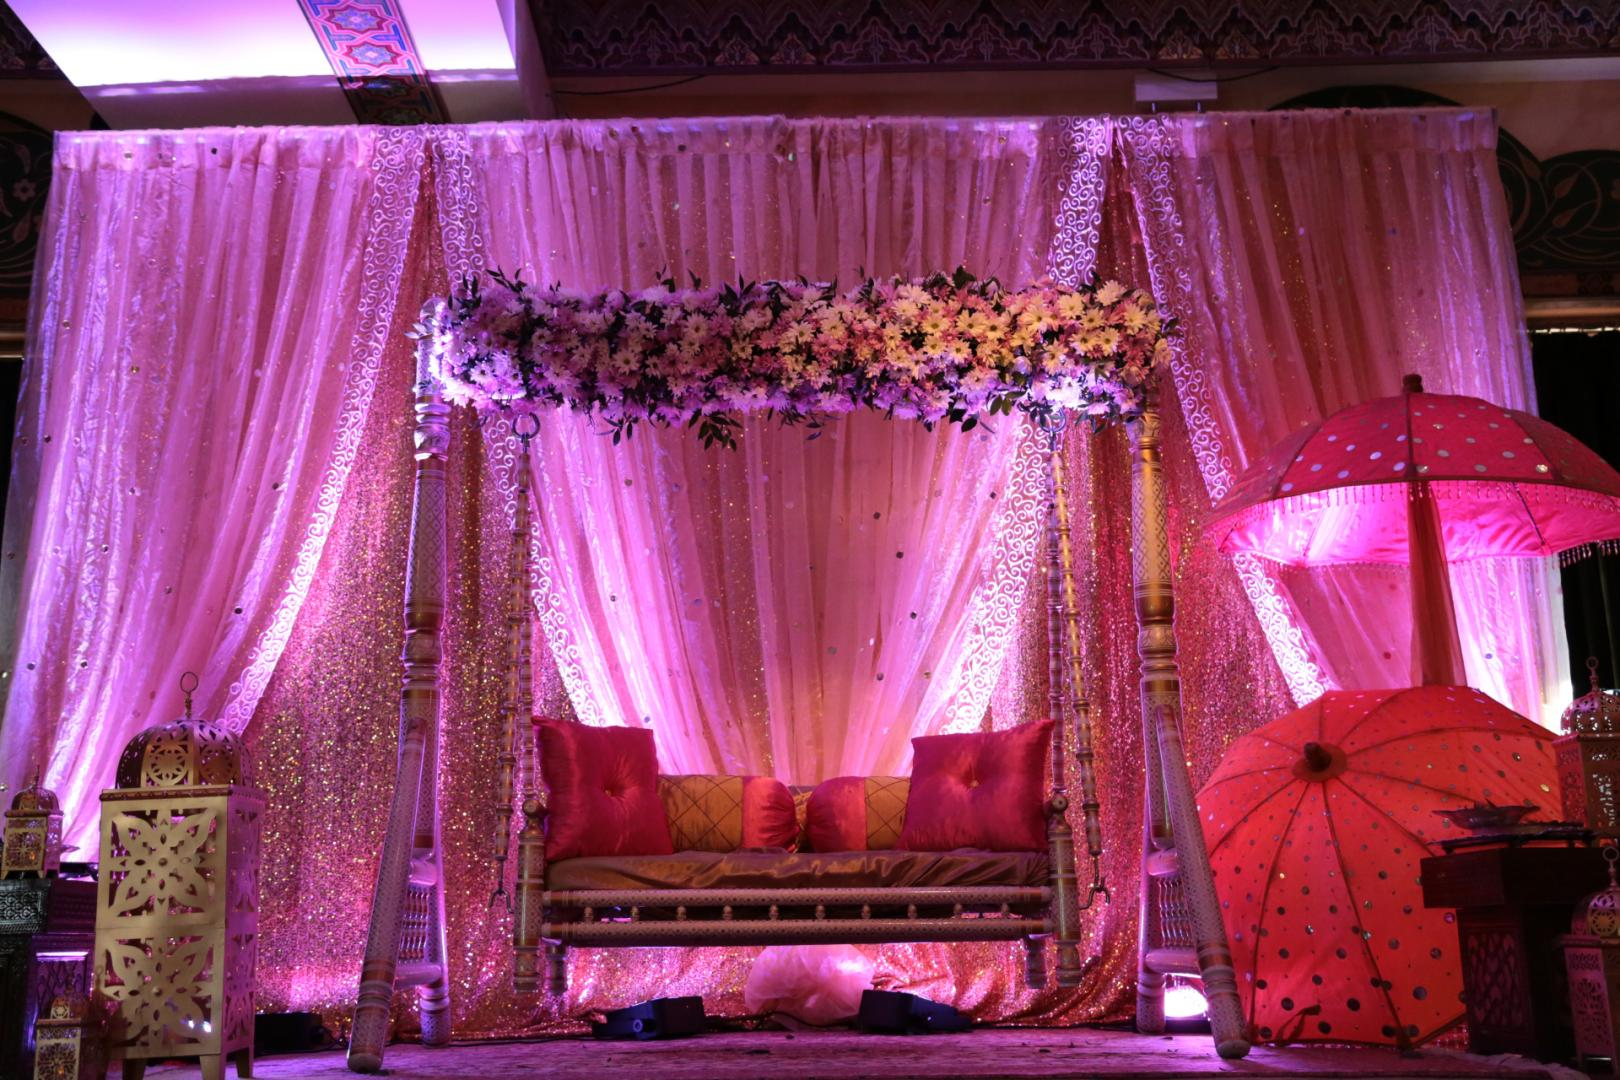 Bring On The Colors! | Elegance Decor